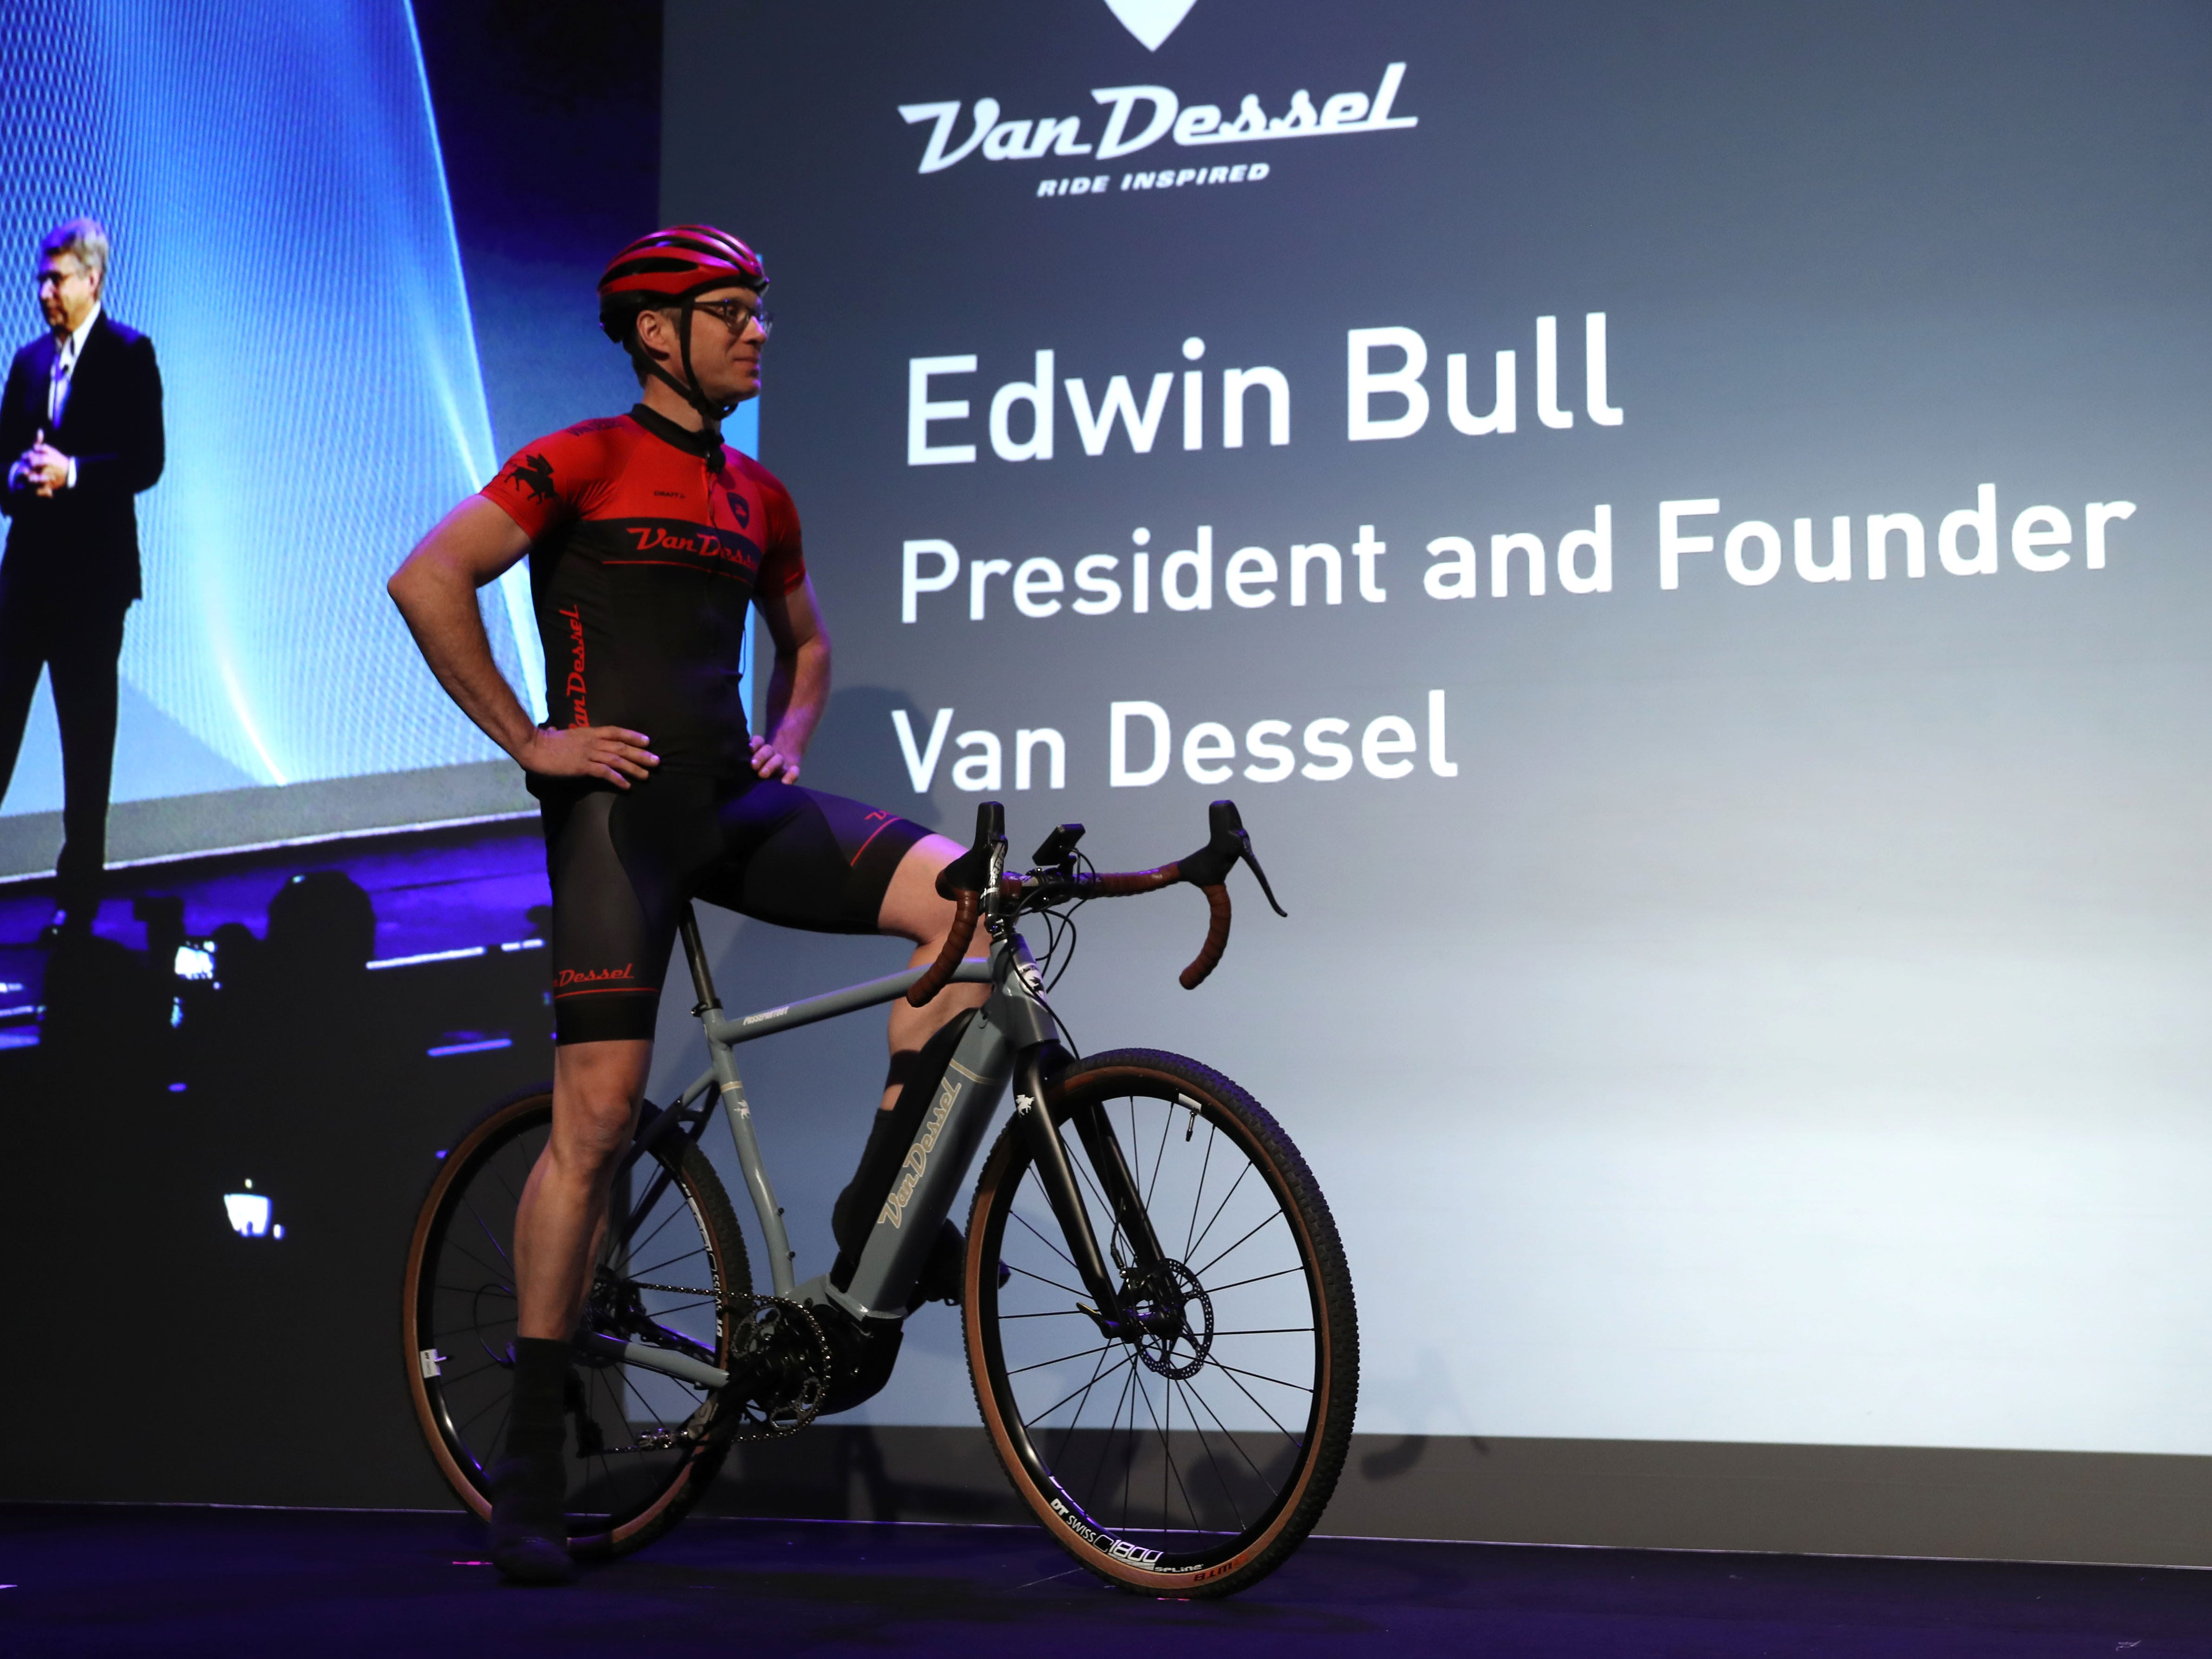 Van Dessel President and Founder Edwin Bull on an electric bicycle.